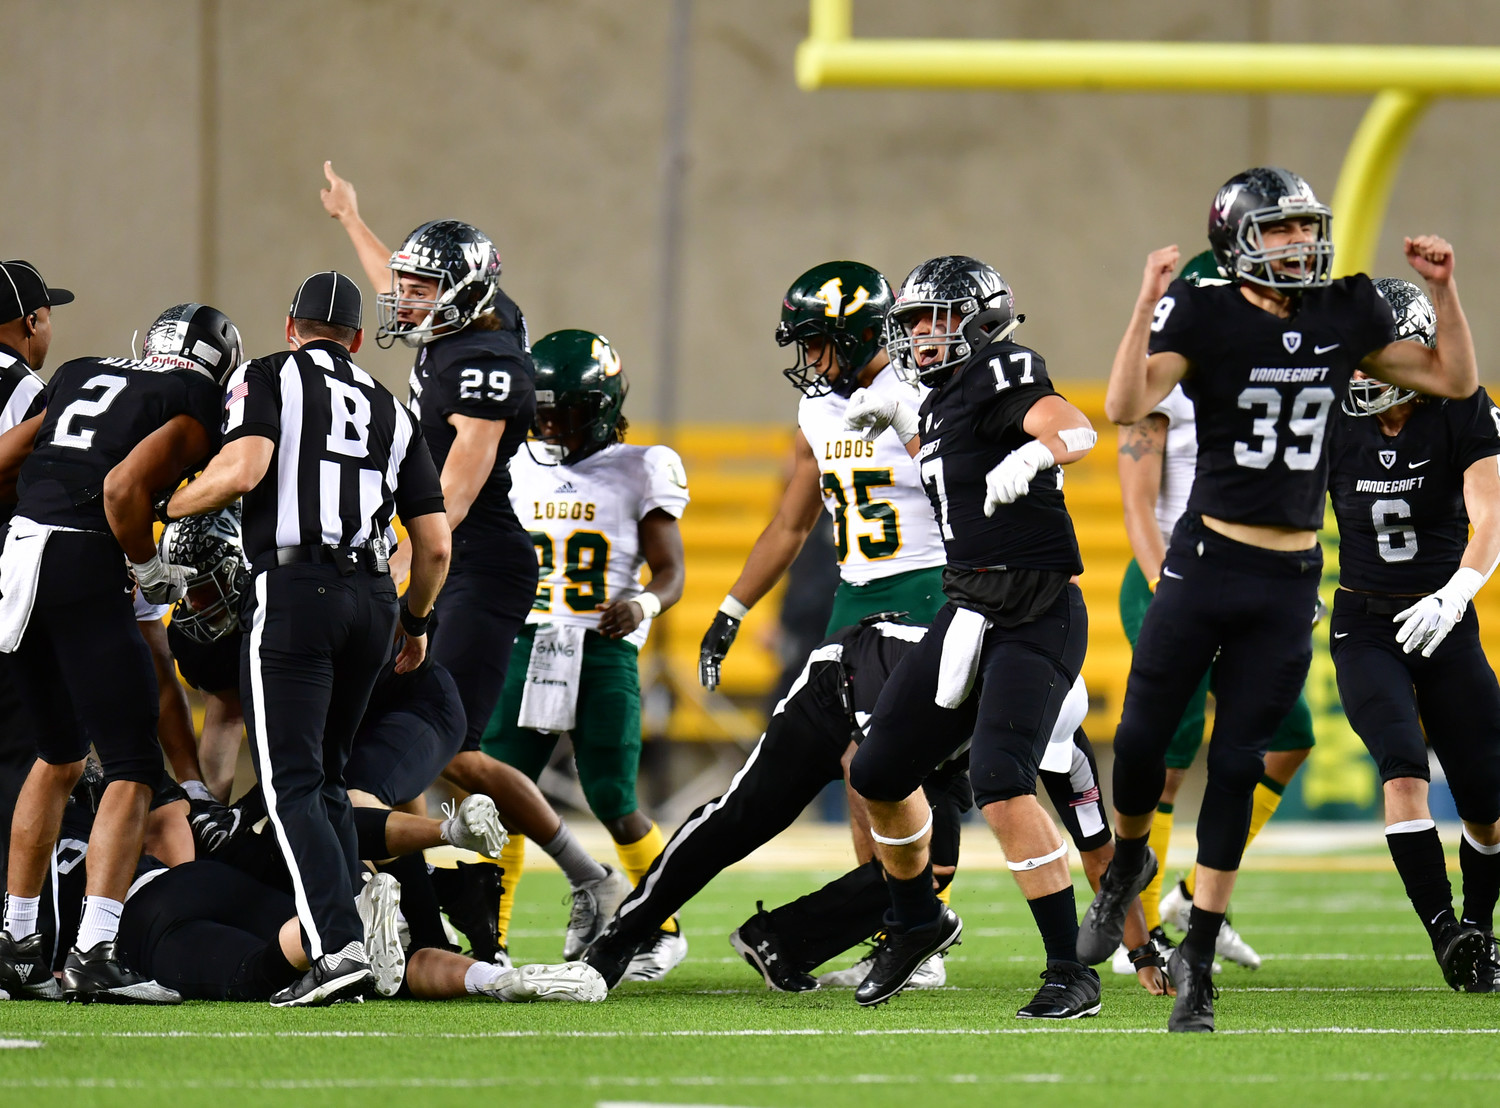 Vandegrift fell to Longview 56-28 in the regional semifinals Saturday at McLane Stadium in Waco.